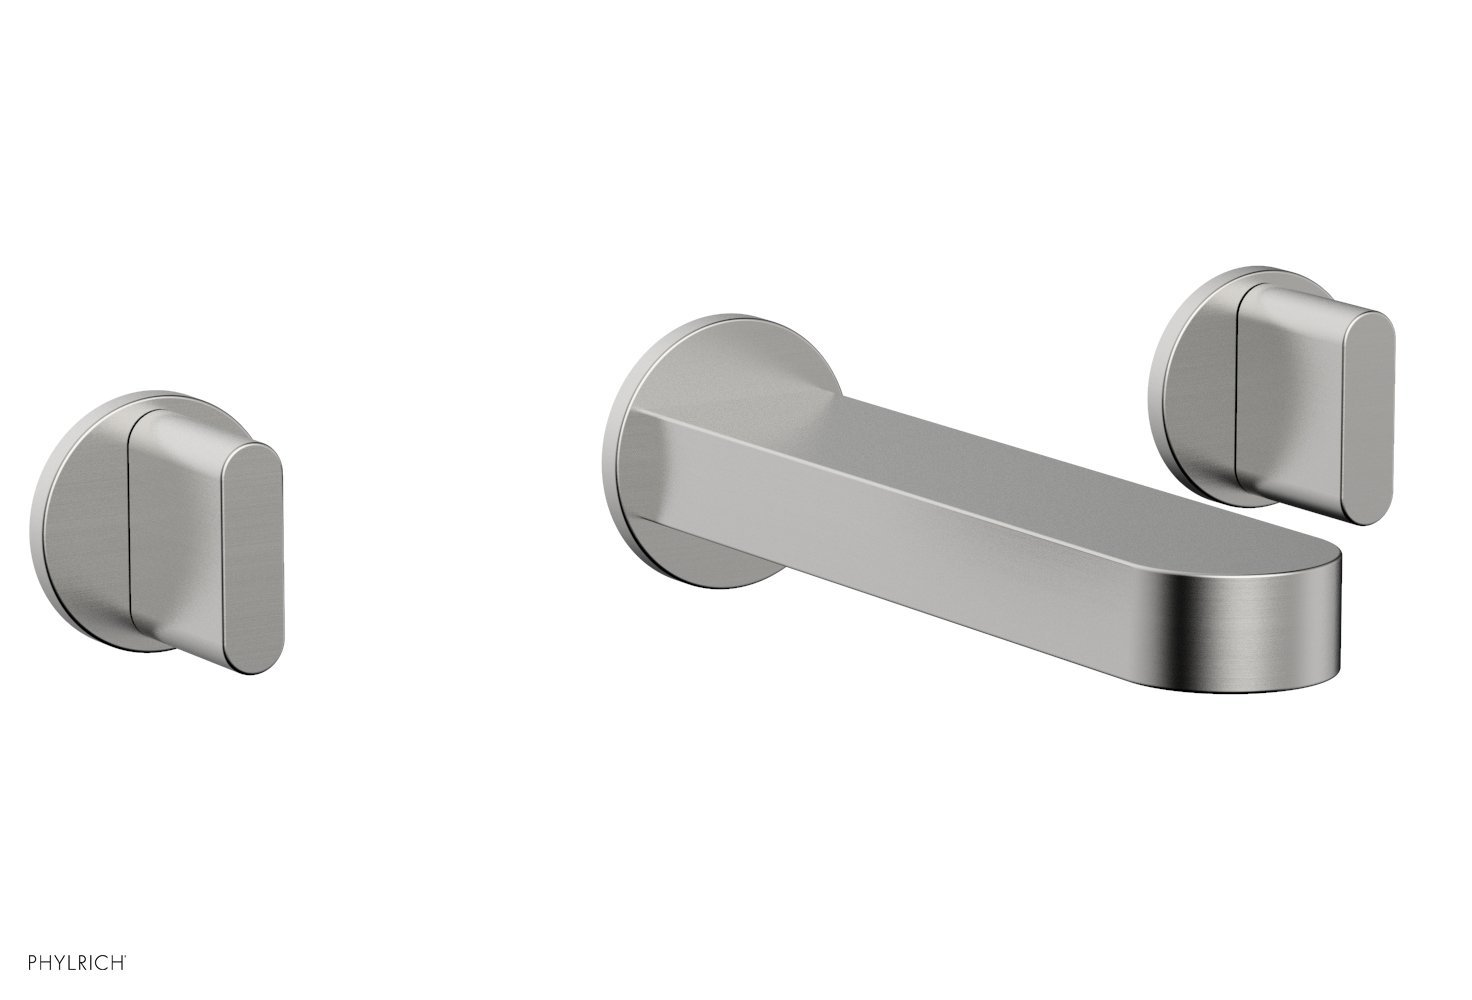 Phylrich 183-11-26D ROND Wall Lavatory Set - Blade Handles - Satin Chrome